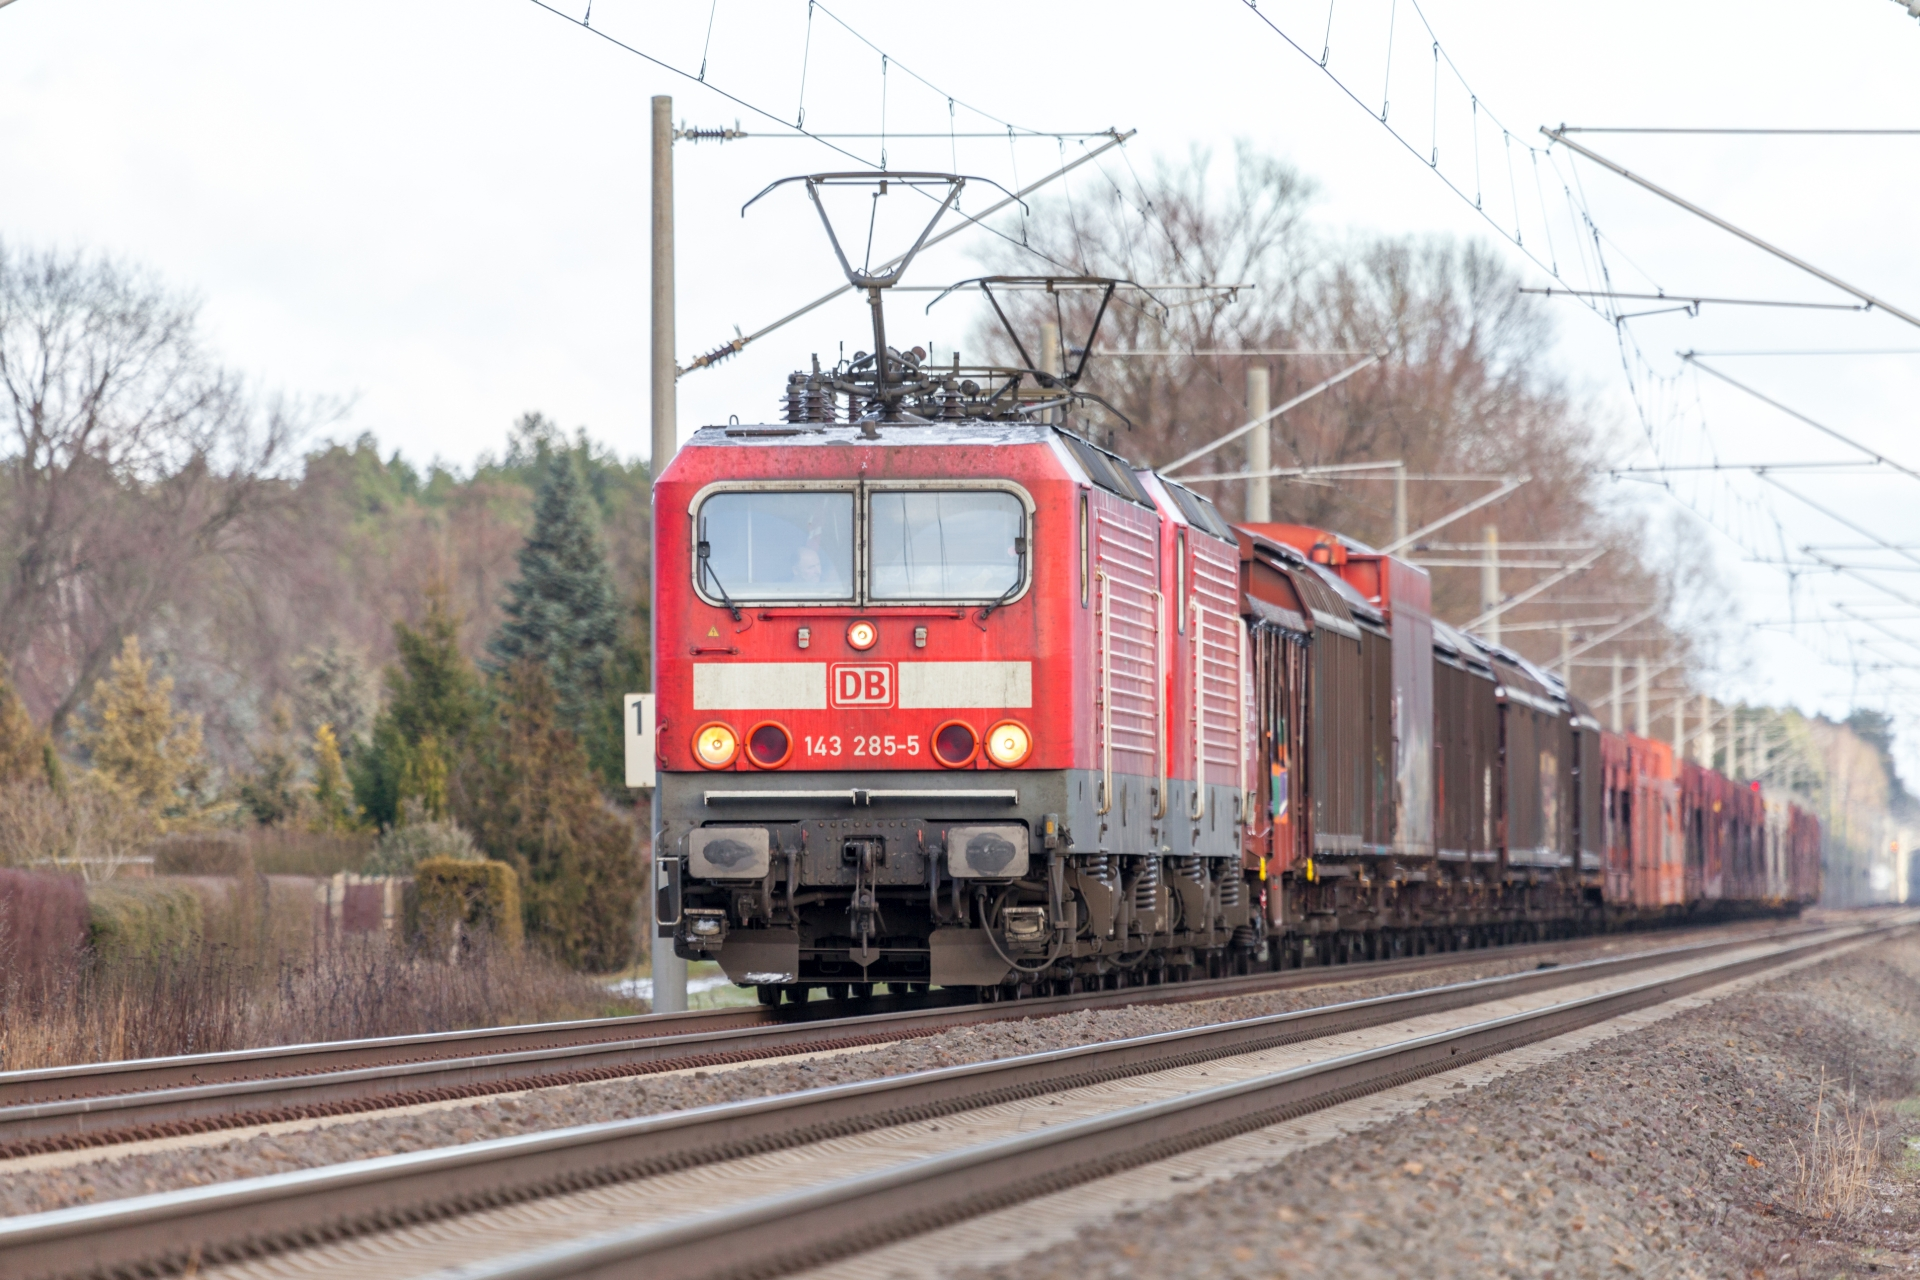 Ricardo supports DB Netz AG with TSI certification and safety assessments of ETCS